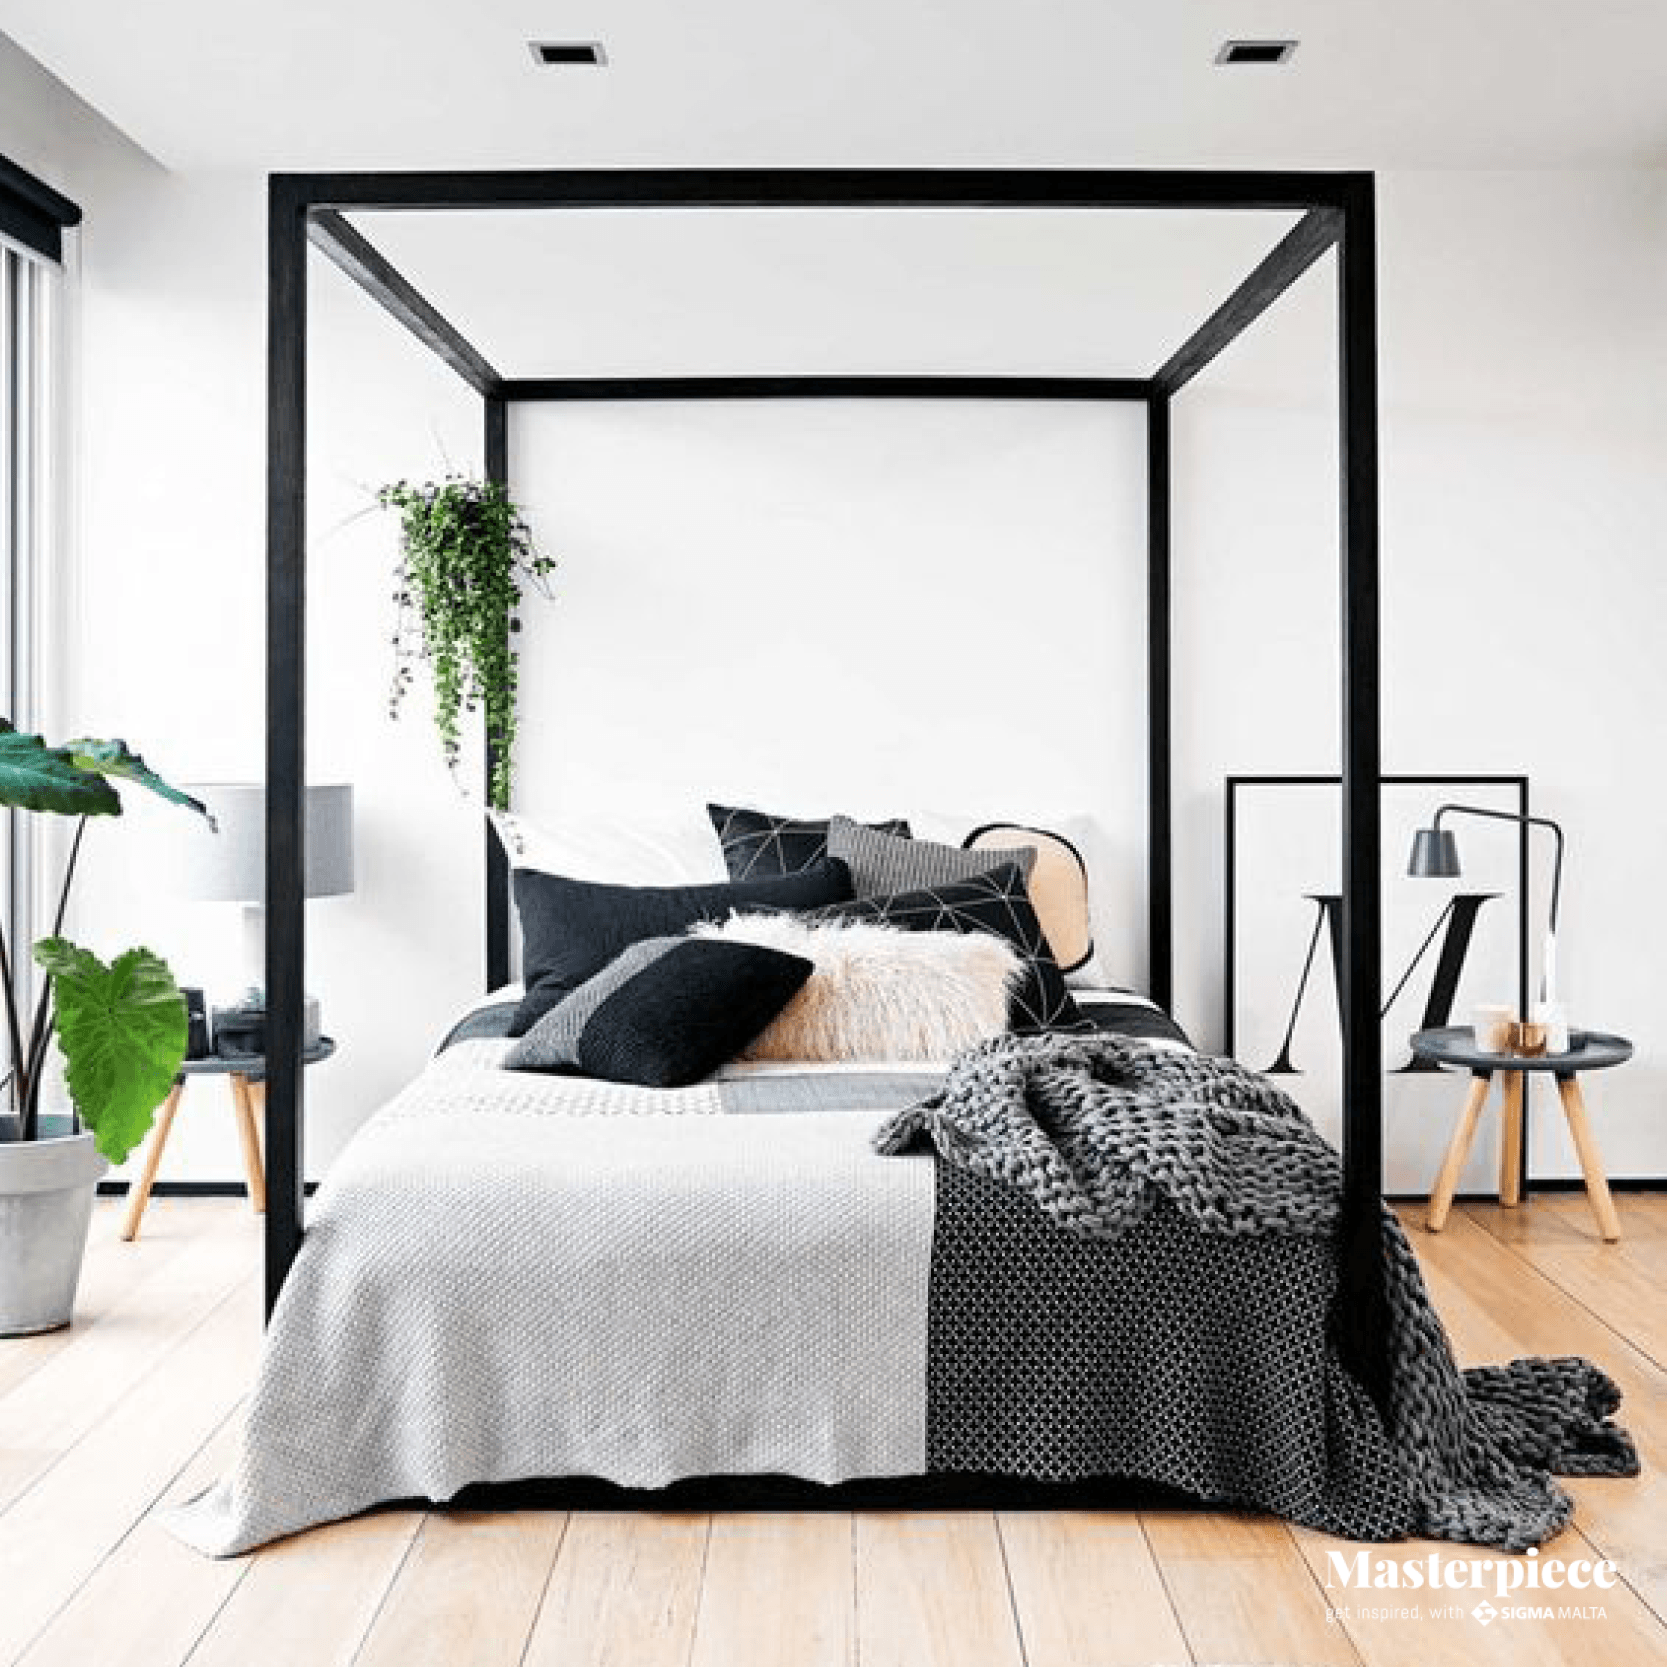 Minimalist </br><span> chic bedroom </span>